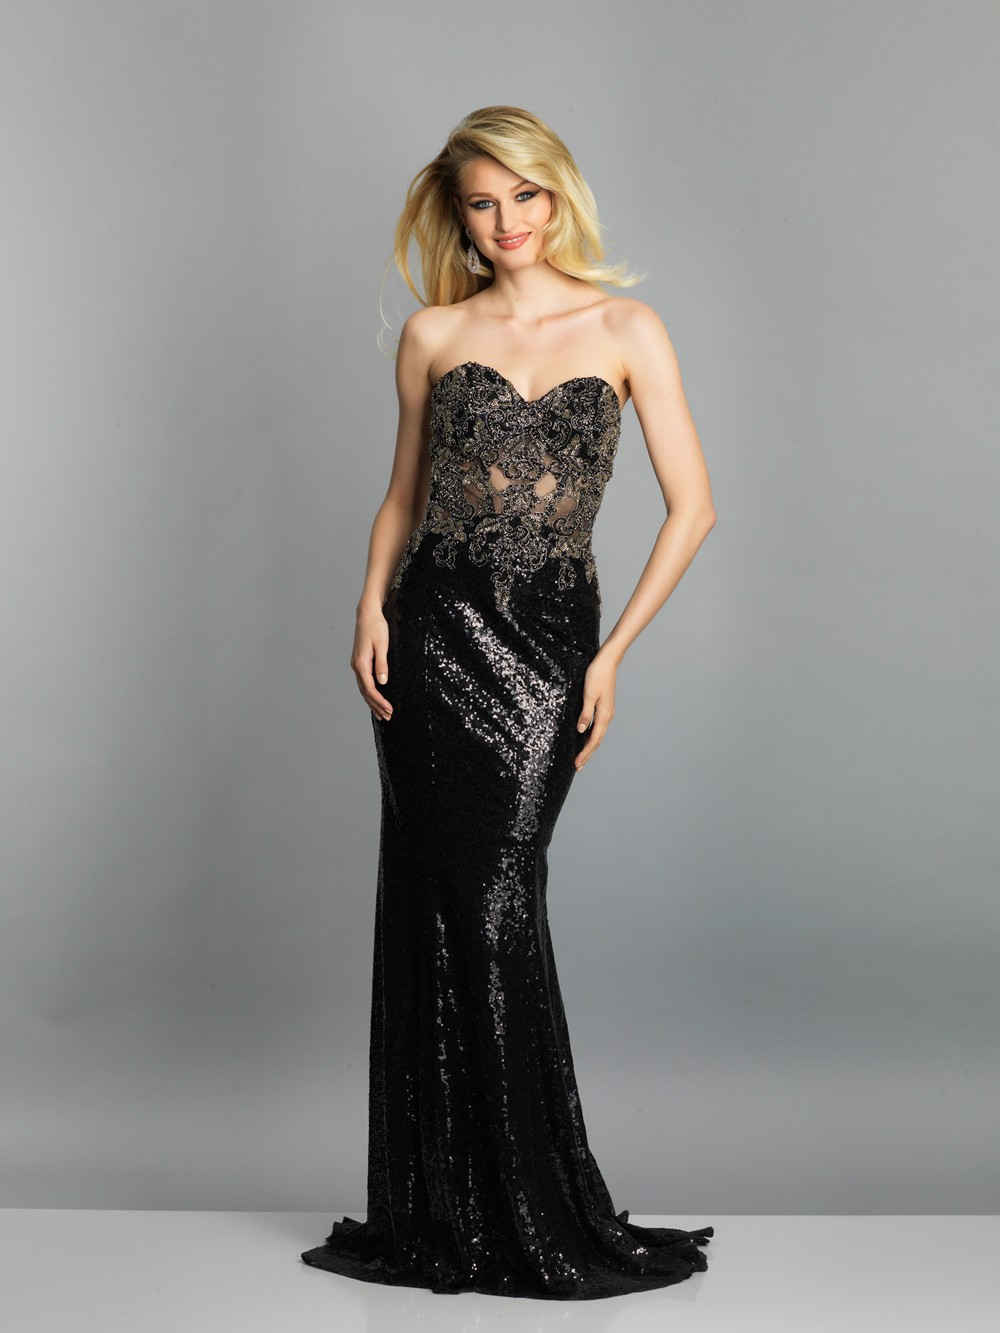 028fb2a9072 Long Strapless Prom Dress With Sweetheart Neckline And Lace Bodice